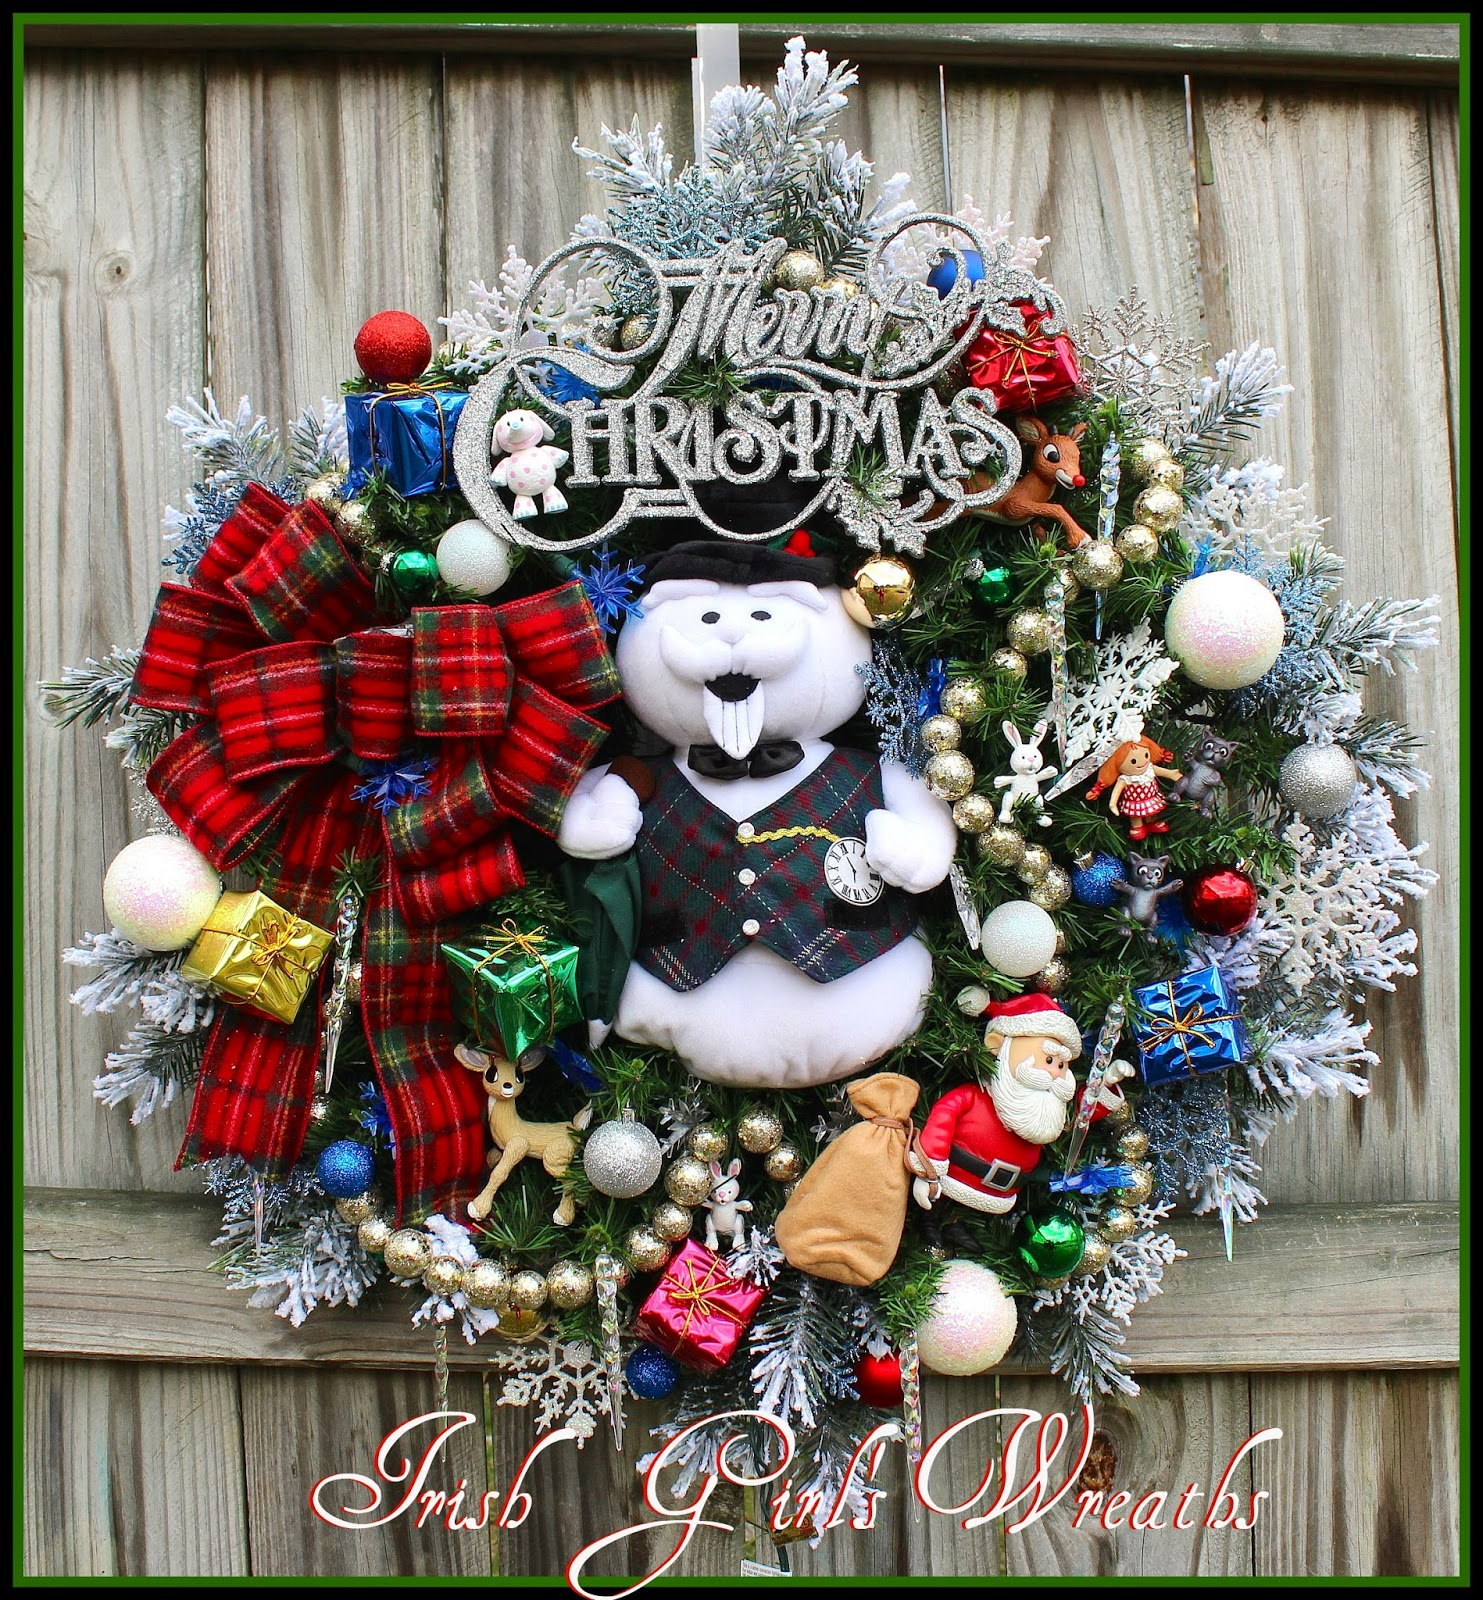 Sam the Snowman Christmas wreath, Flannel tartan bow, Snowflake lights, Rudolph, Santa